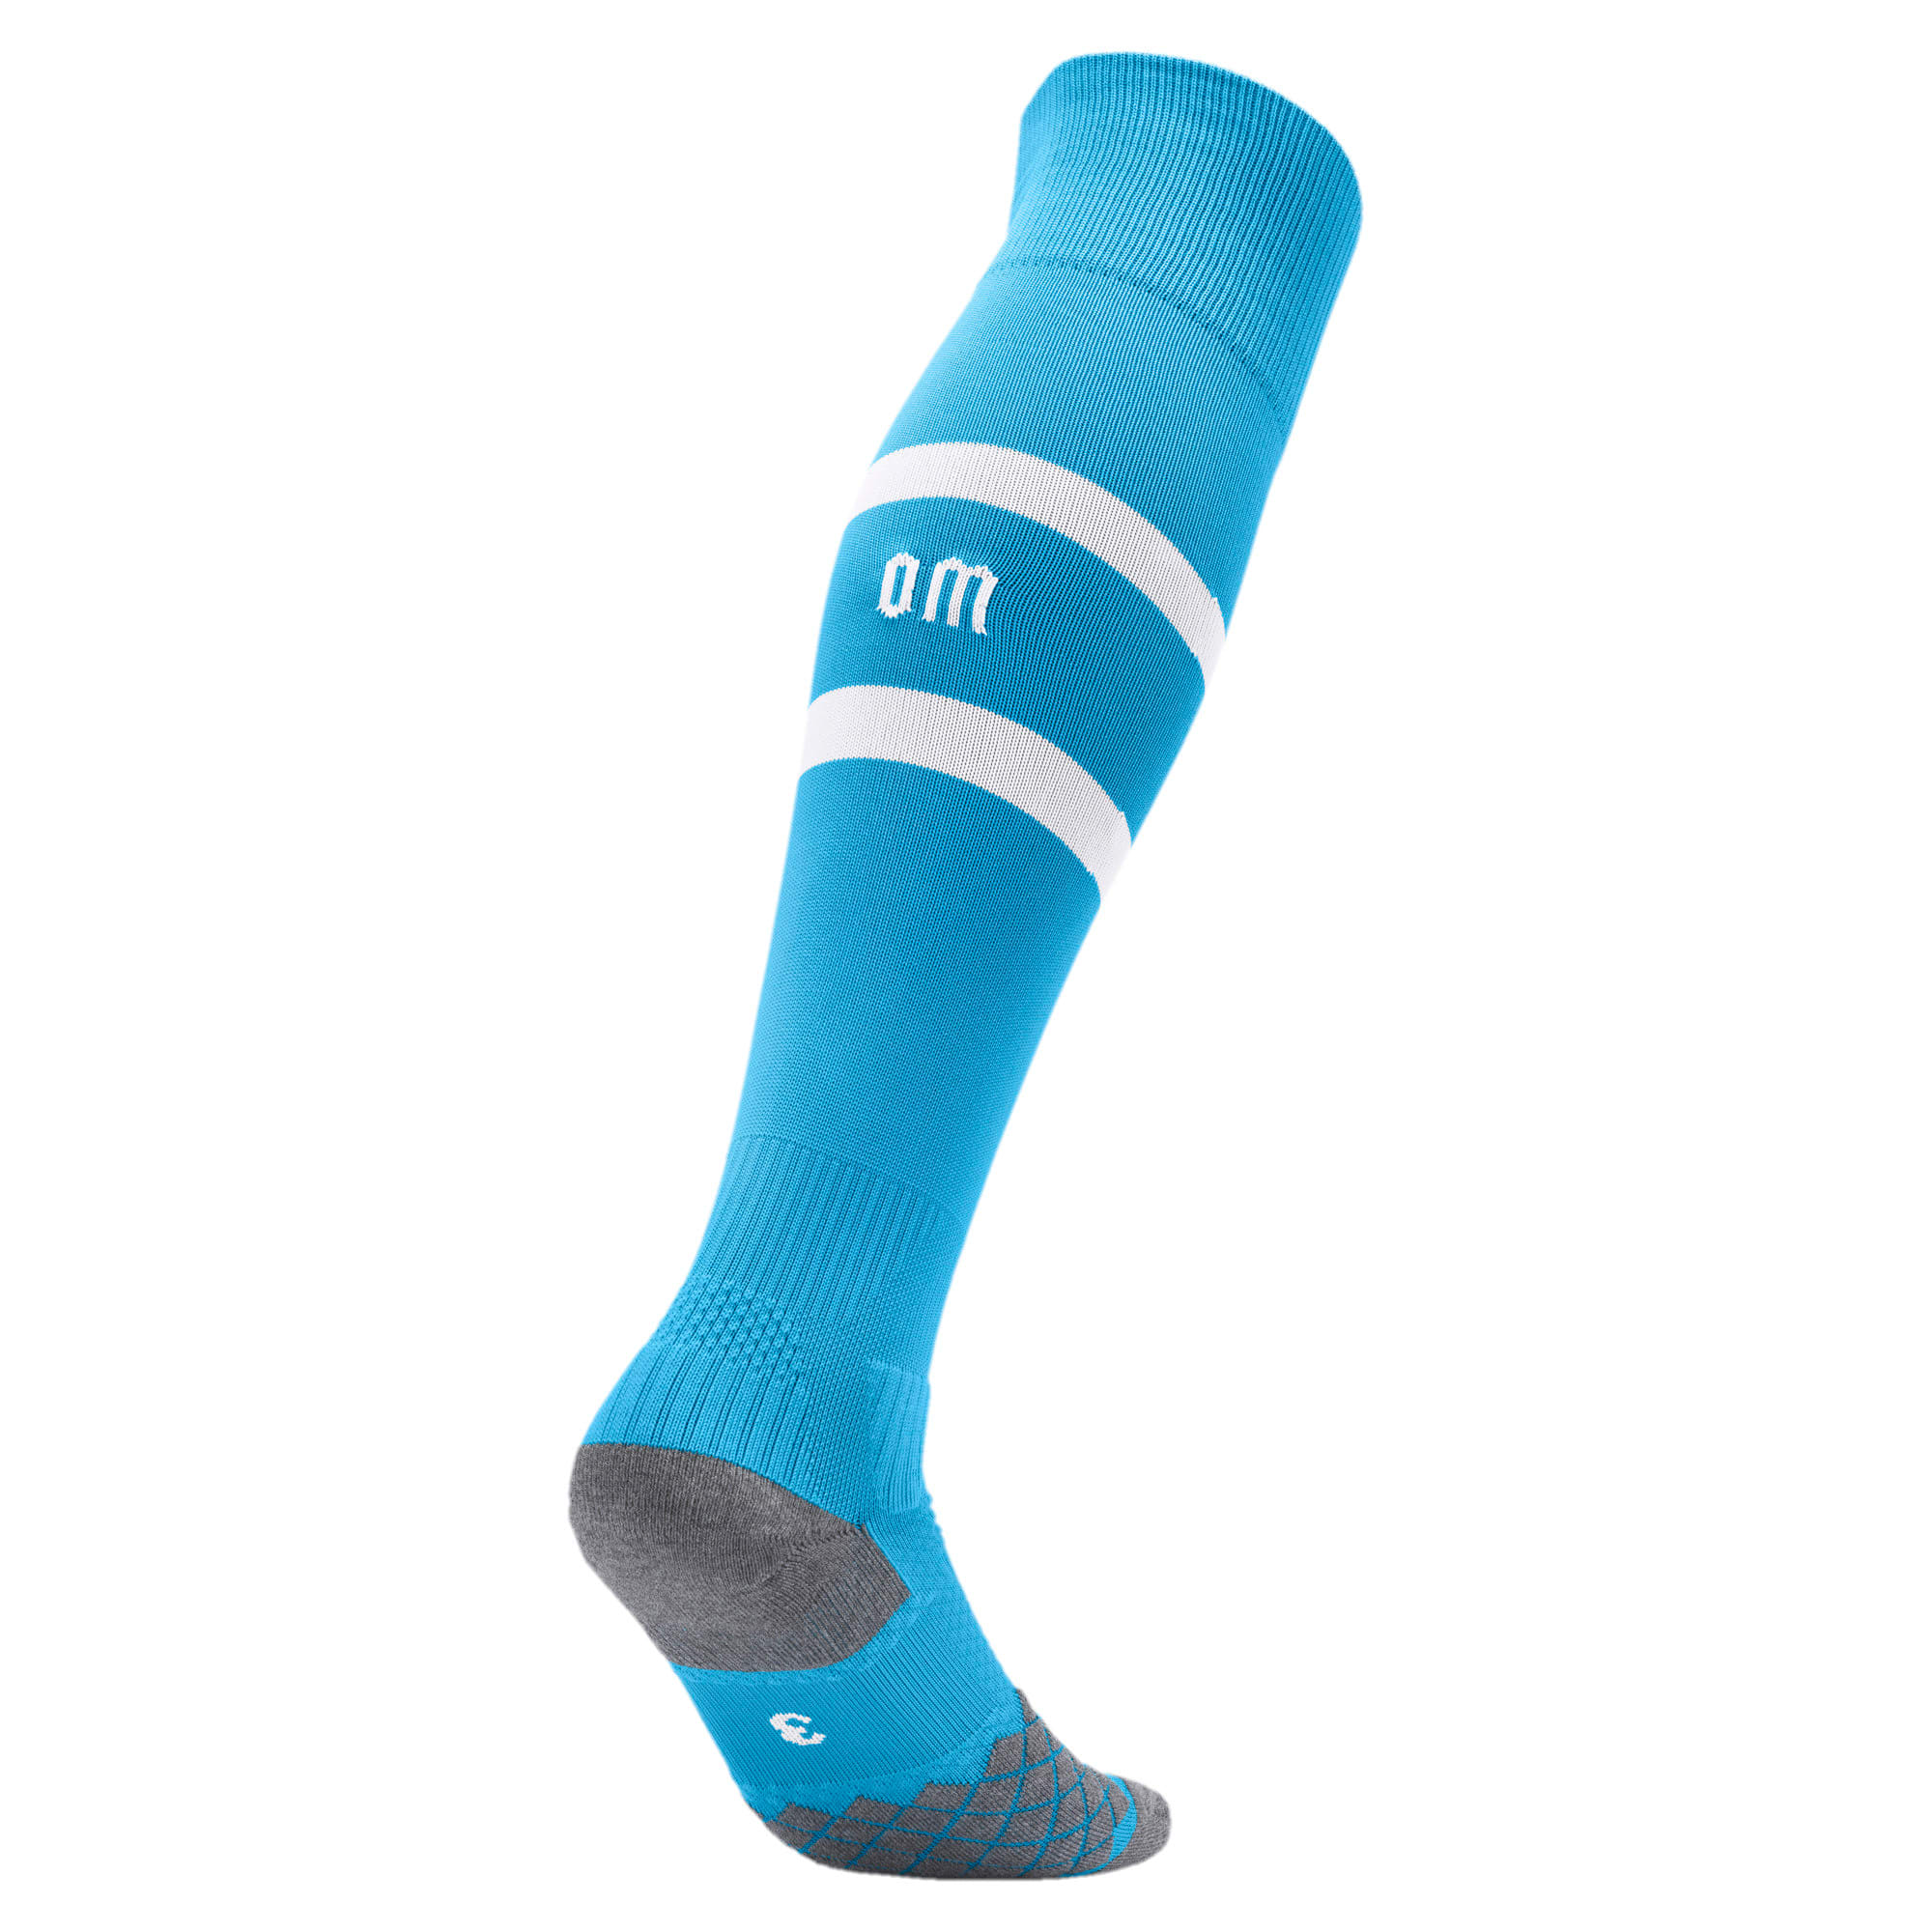 Thumbnail 2 of Olympique de Marseille Boys' Band Socks, Bleu Azur-Puma White, medium